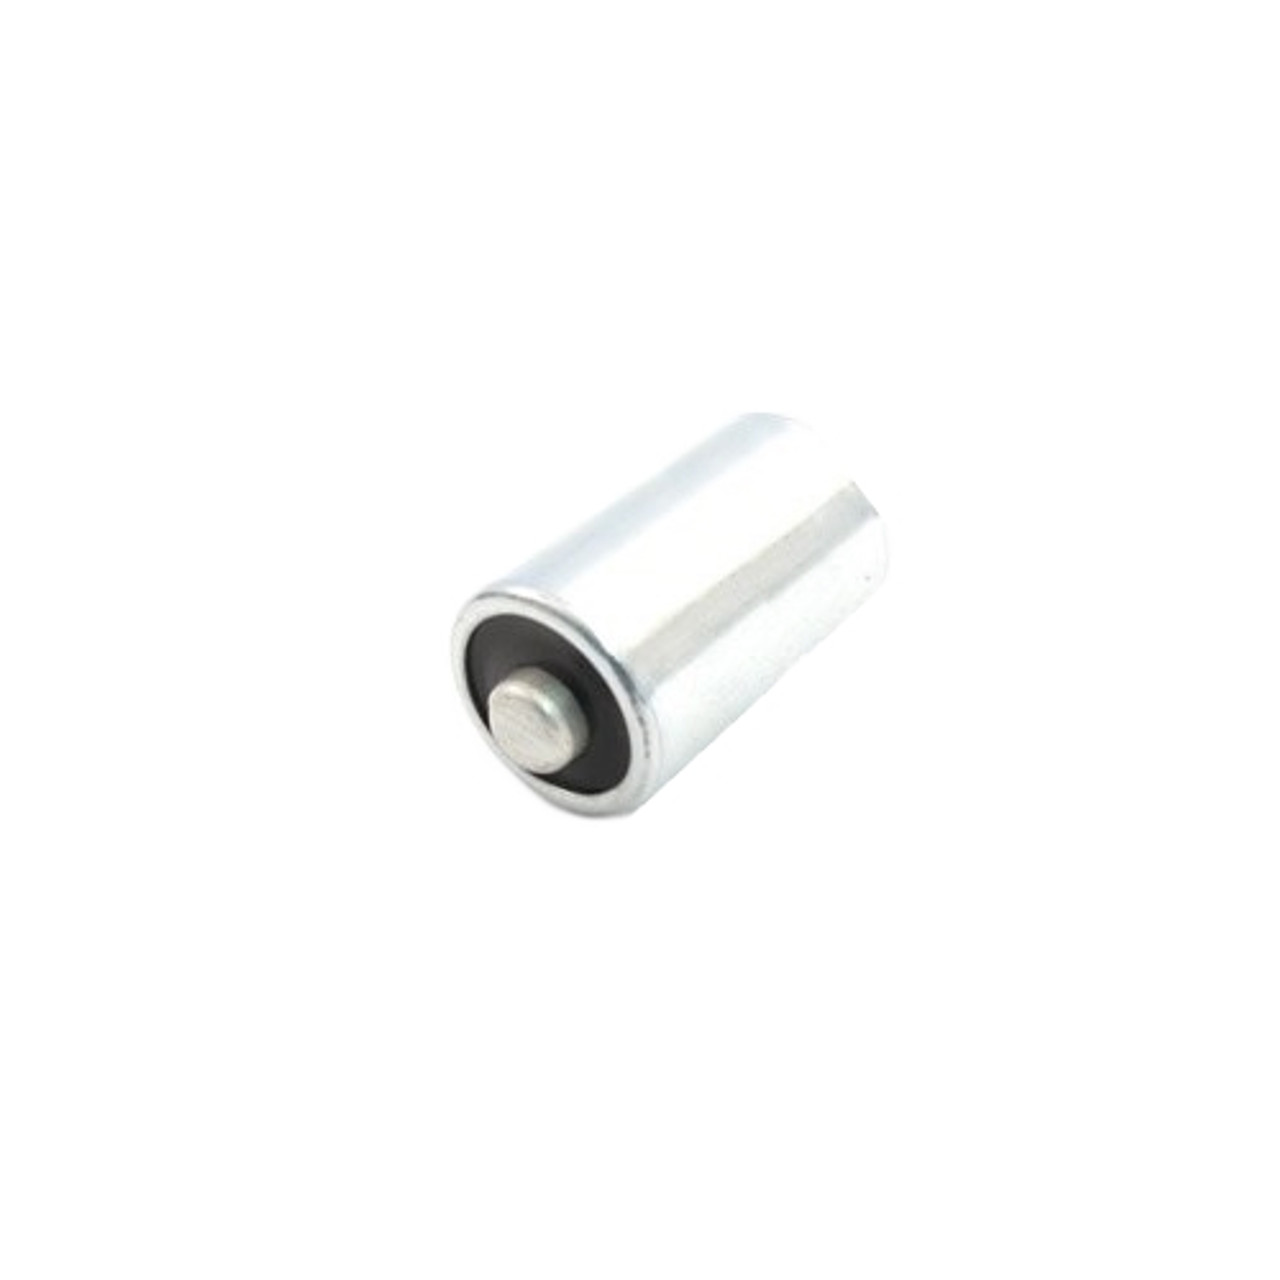 Effe Universal Solder-on Condenser - 31mm Long